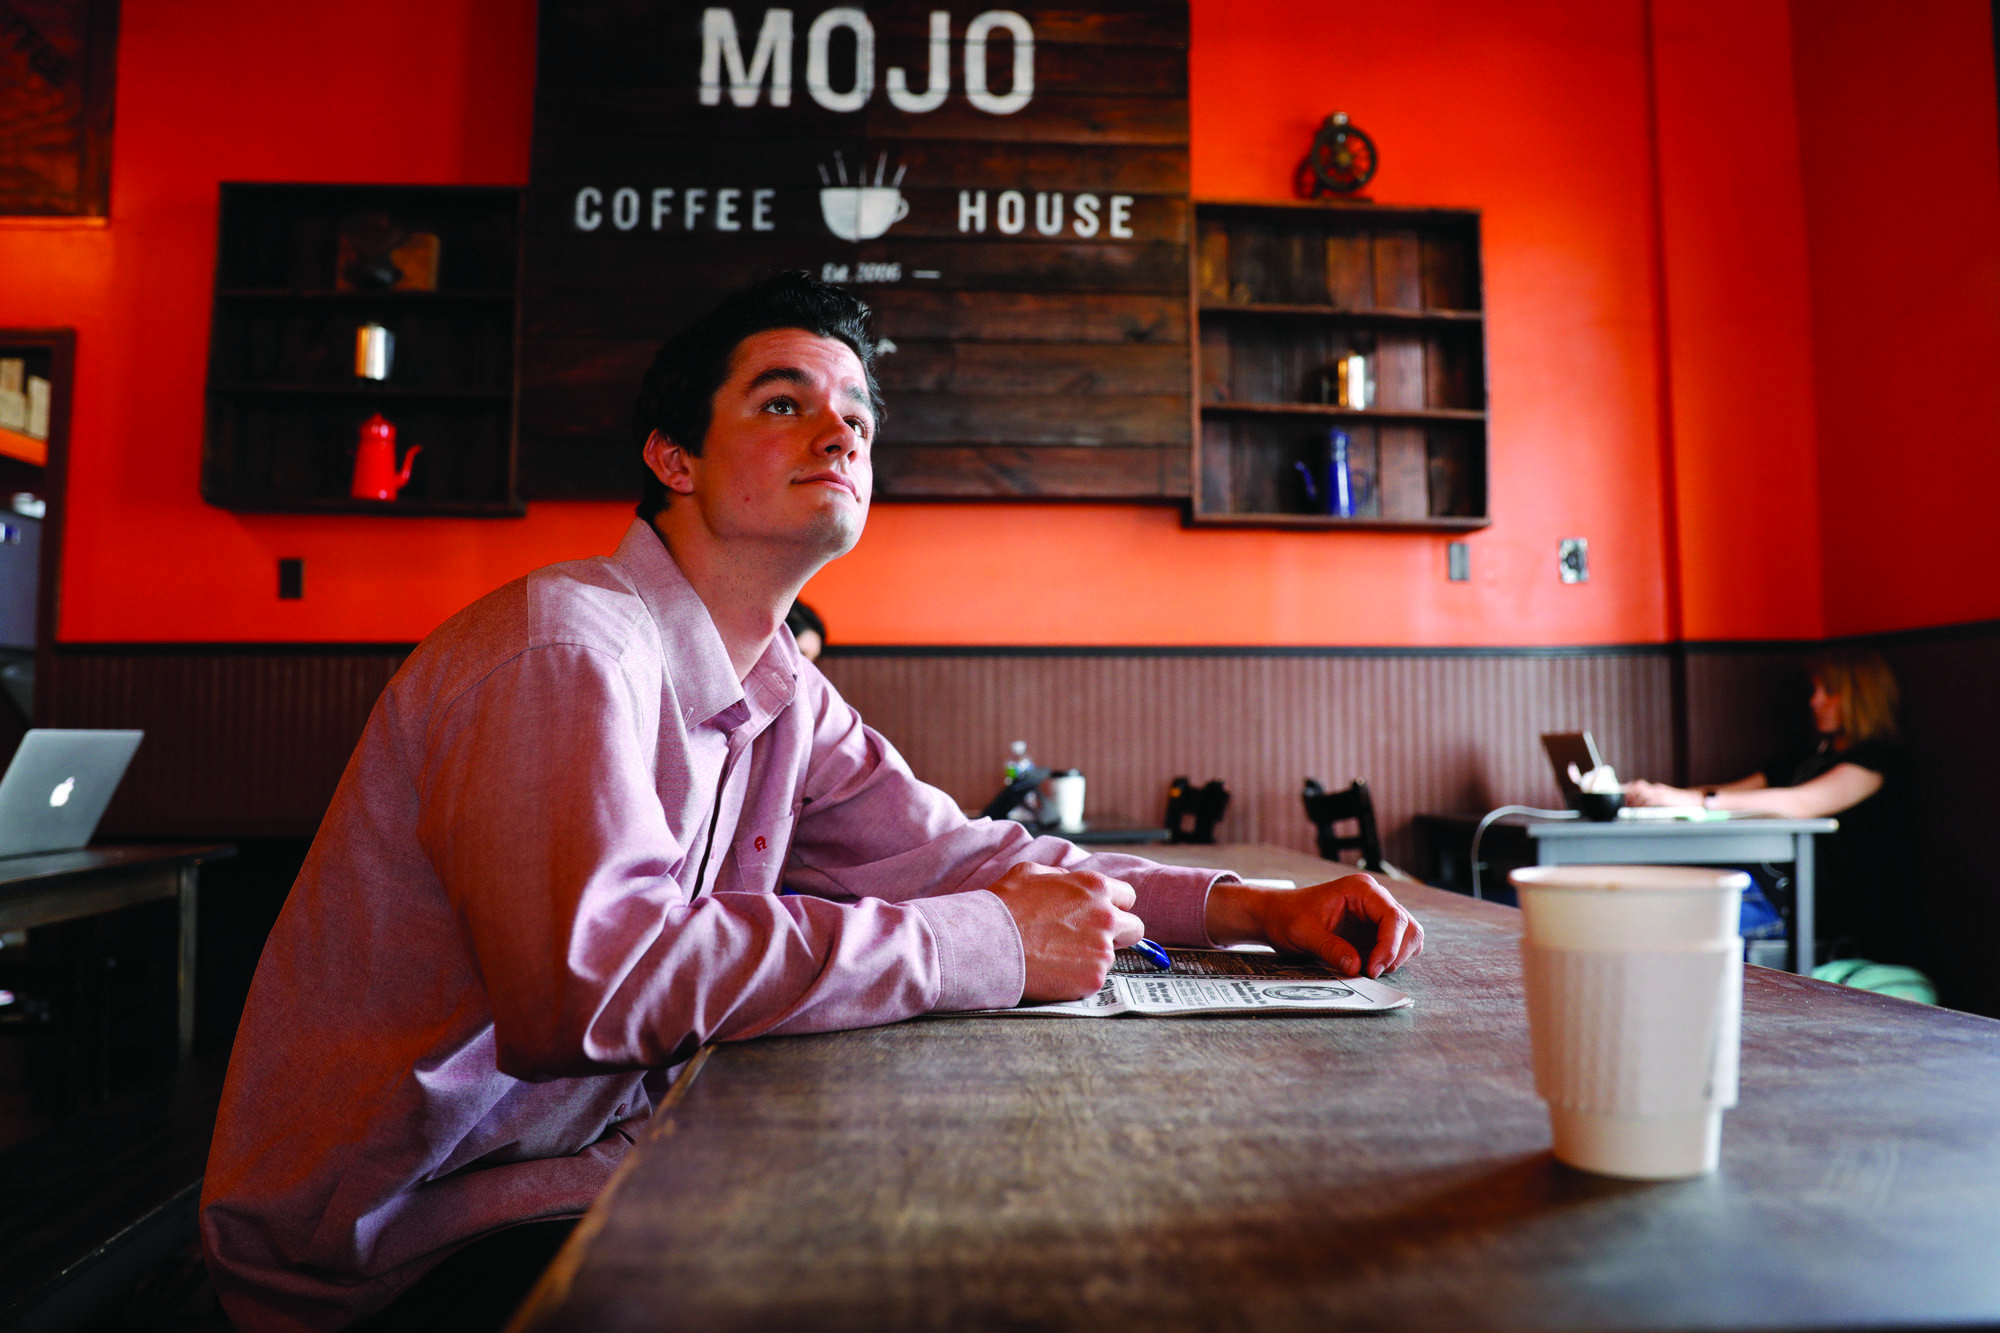 Caleb Beck sits inside Mojo Coffee House. He is one of many who come to enjoy the establishment's food and drinks as well as calm working environment. Photo credit: Barbara Brown